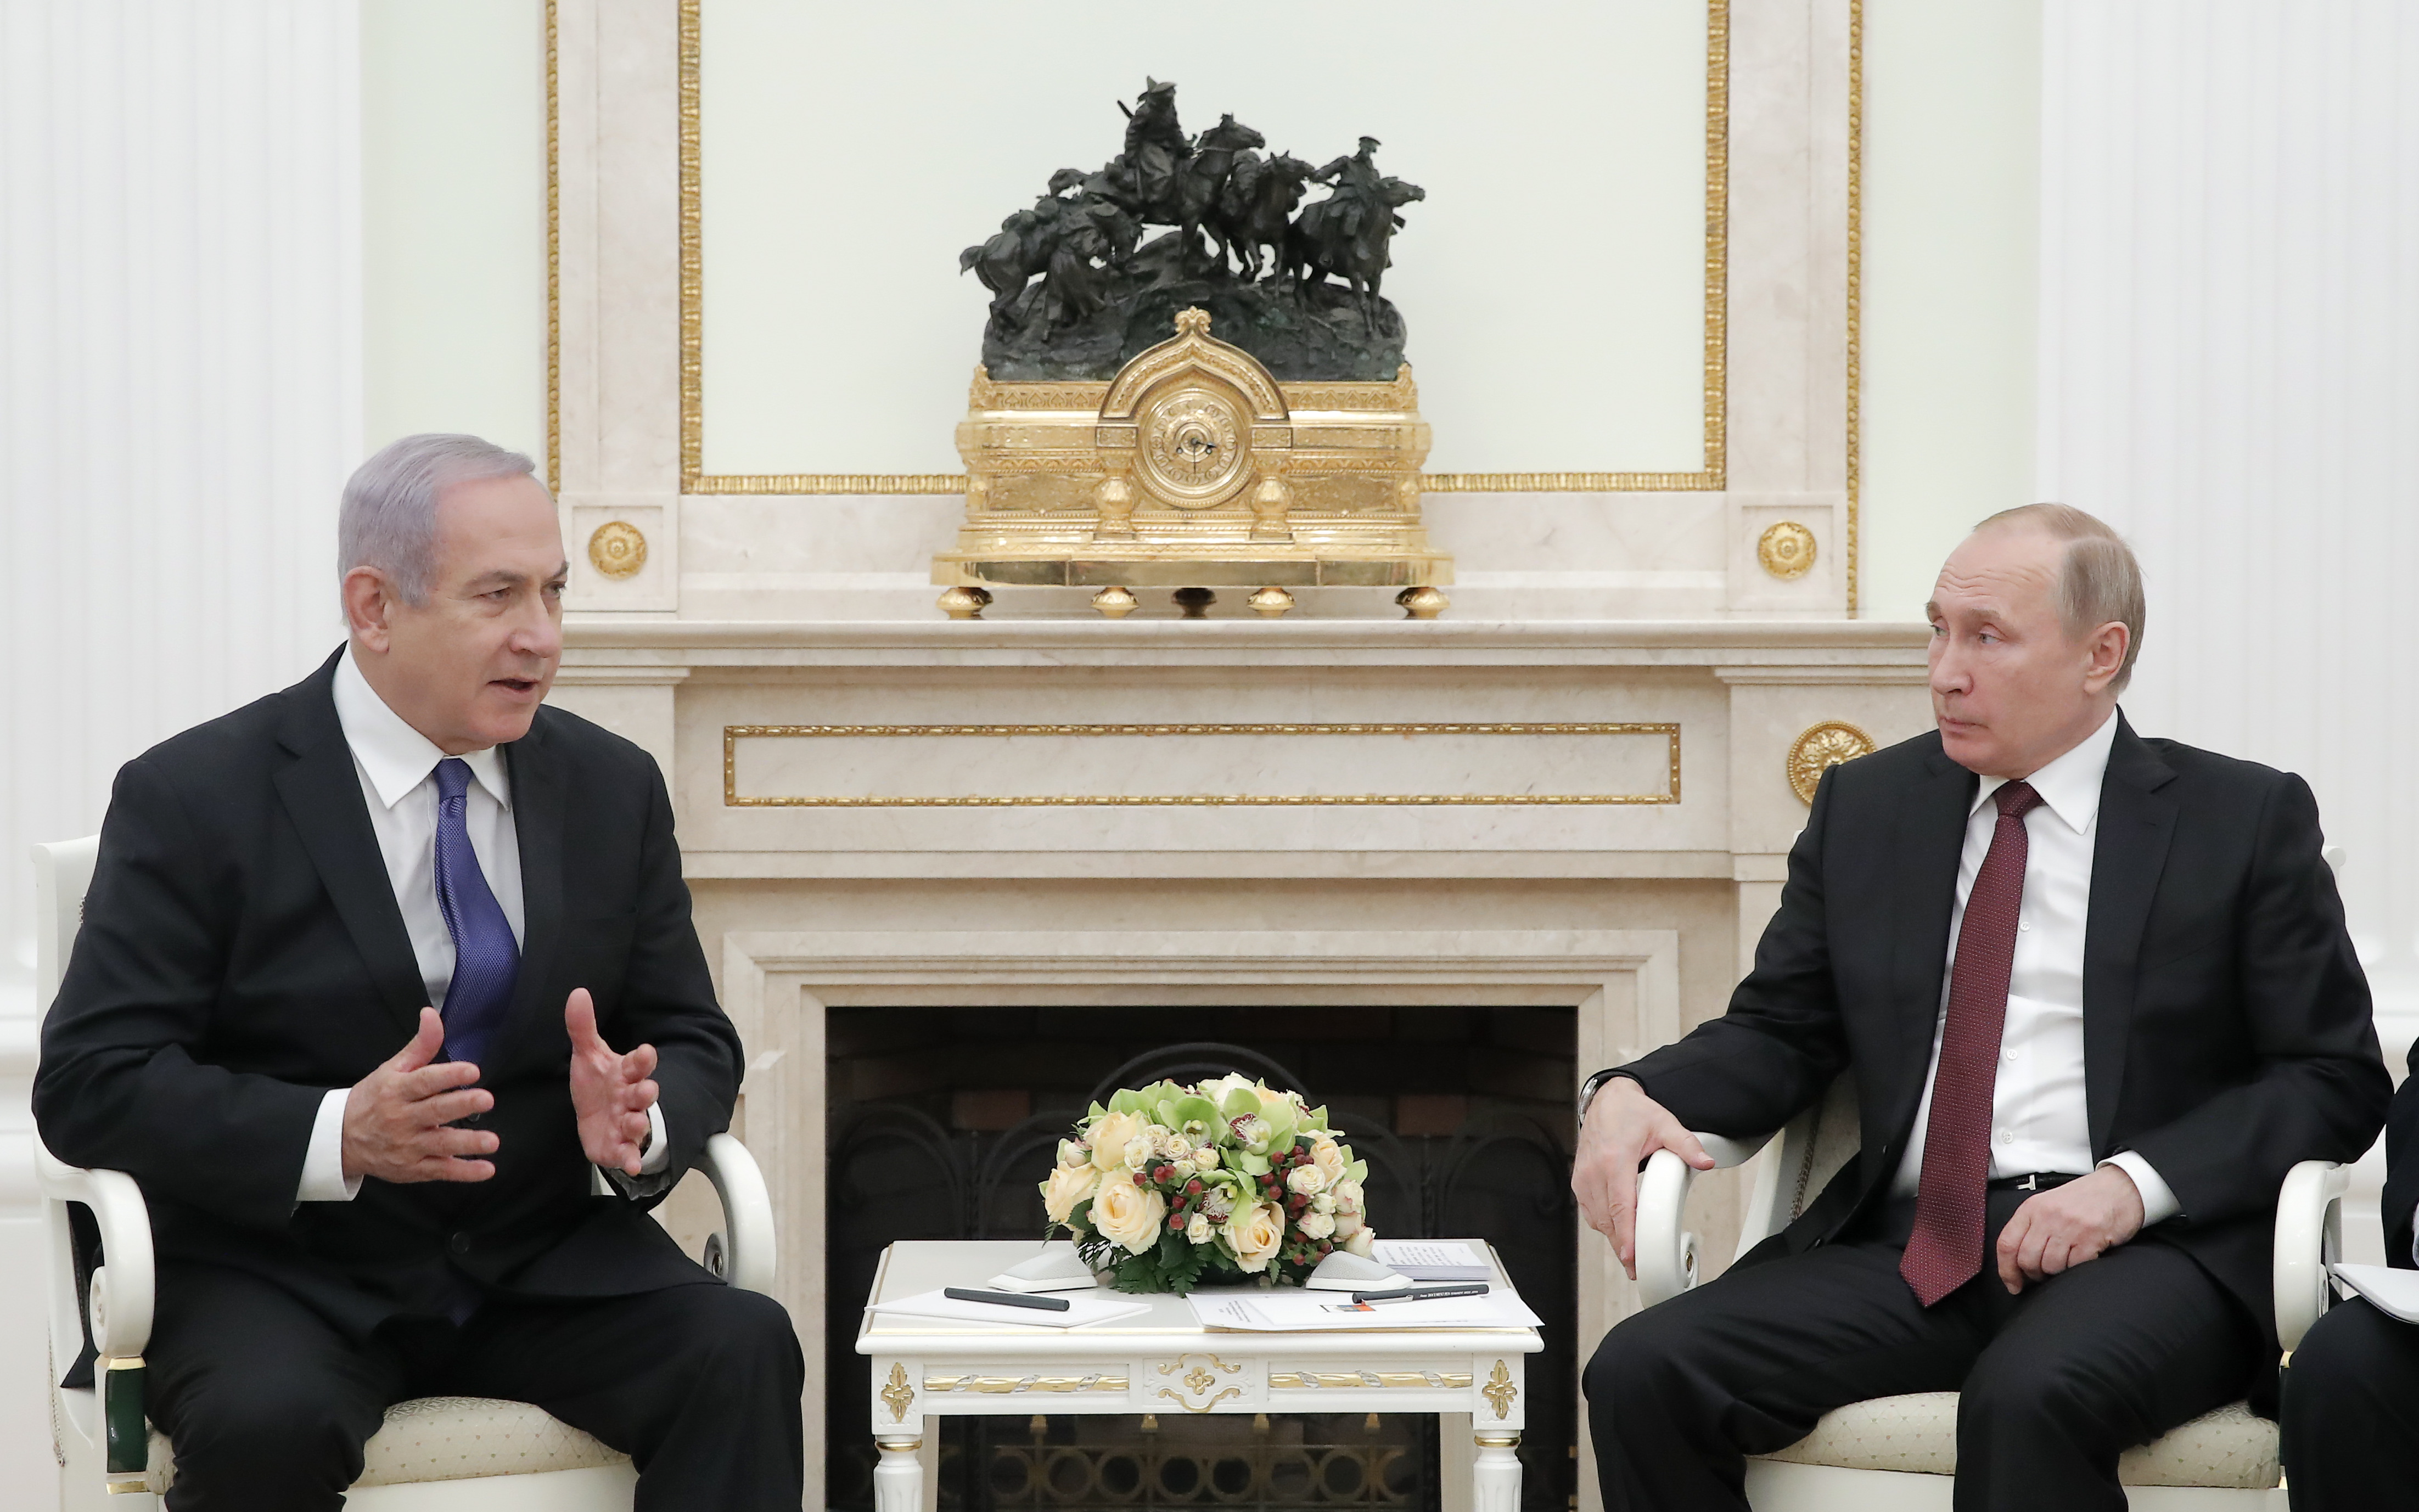 Russian President Vladimir Putin (R) meets with Israeli Prime Minister Benjamin Netanyahu at the Kremlin in Moscow on February 27, 2019. ( MAXIM SHEMETOV/AFP/Getty Images)